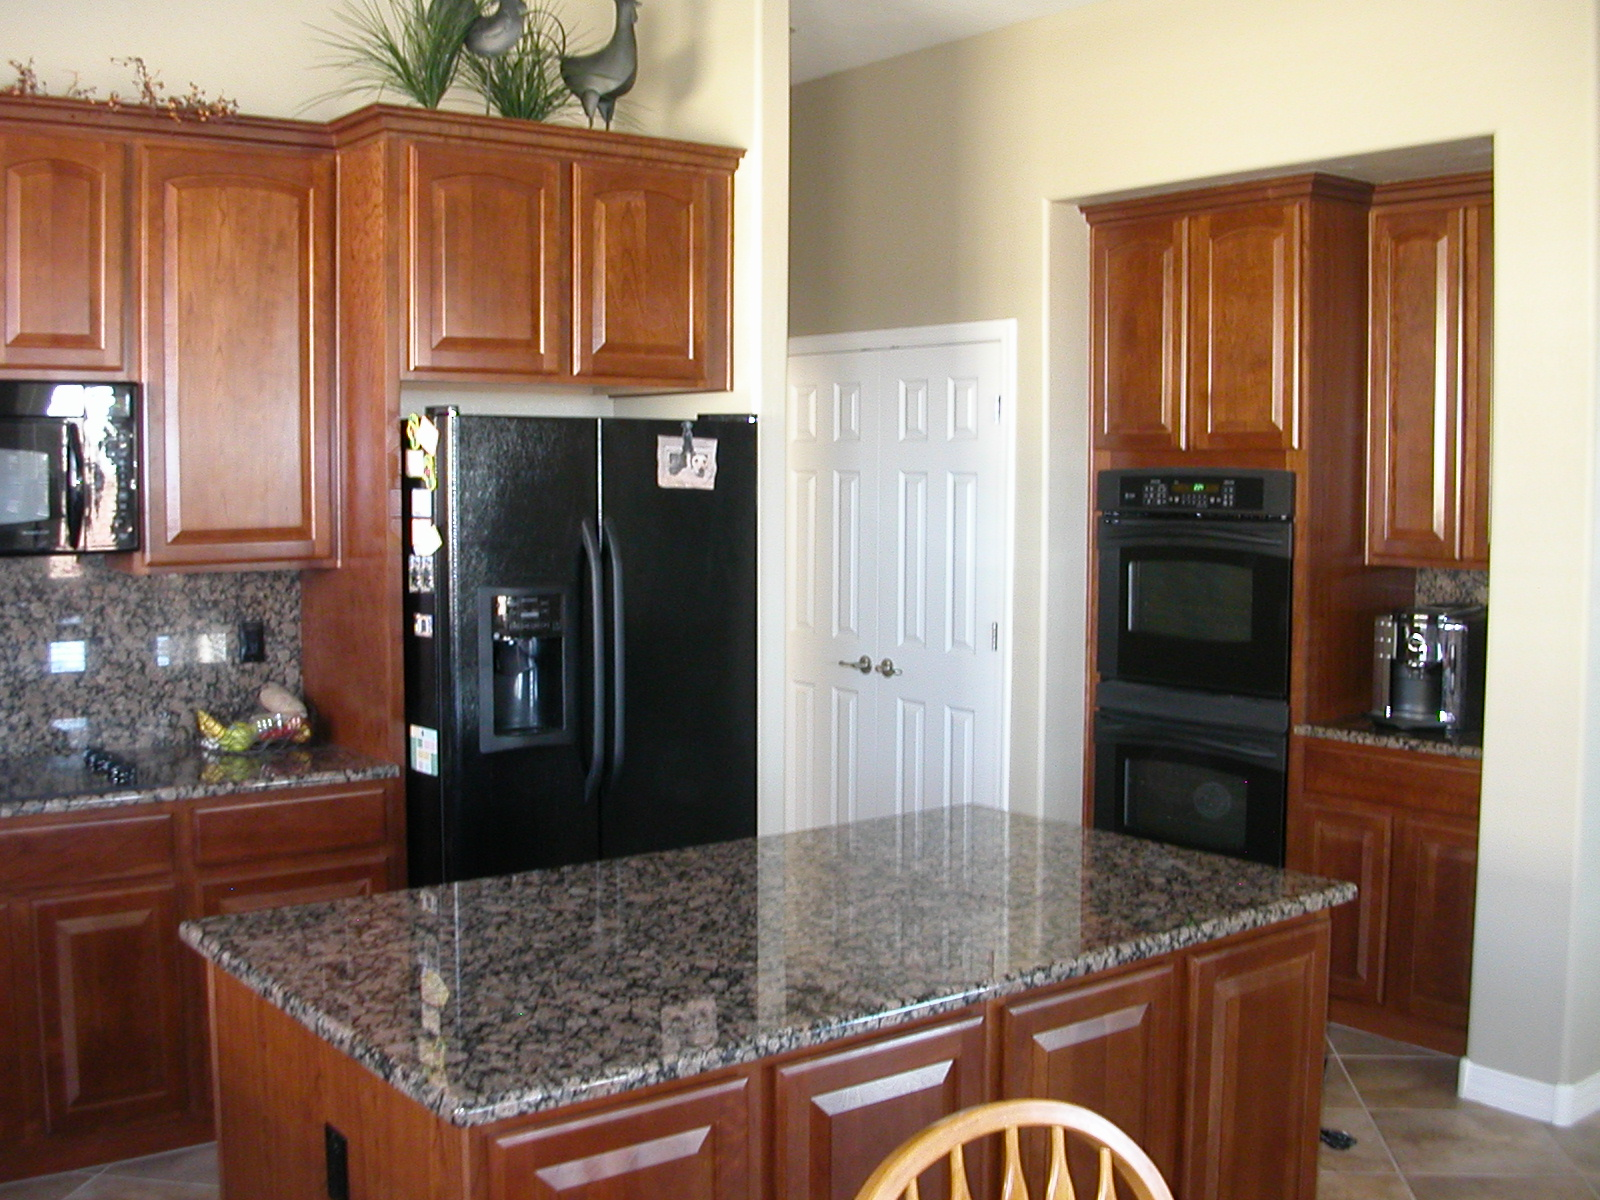 Kitchen appliances black kitchen appliances for Kitchen cabinets with black appliances